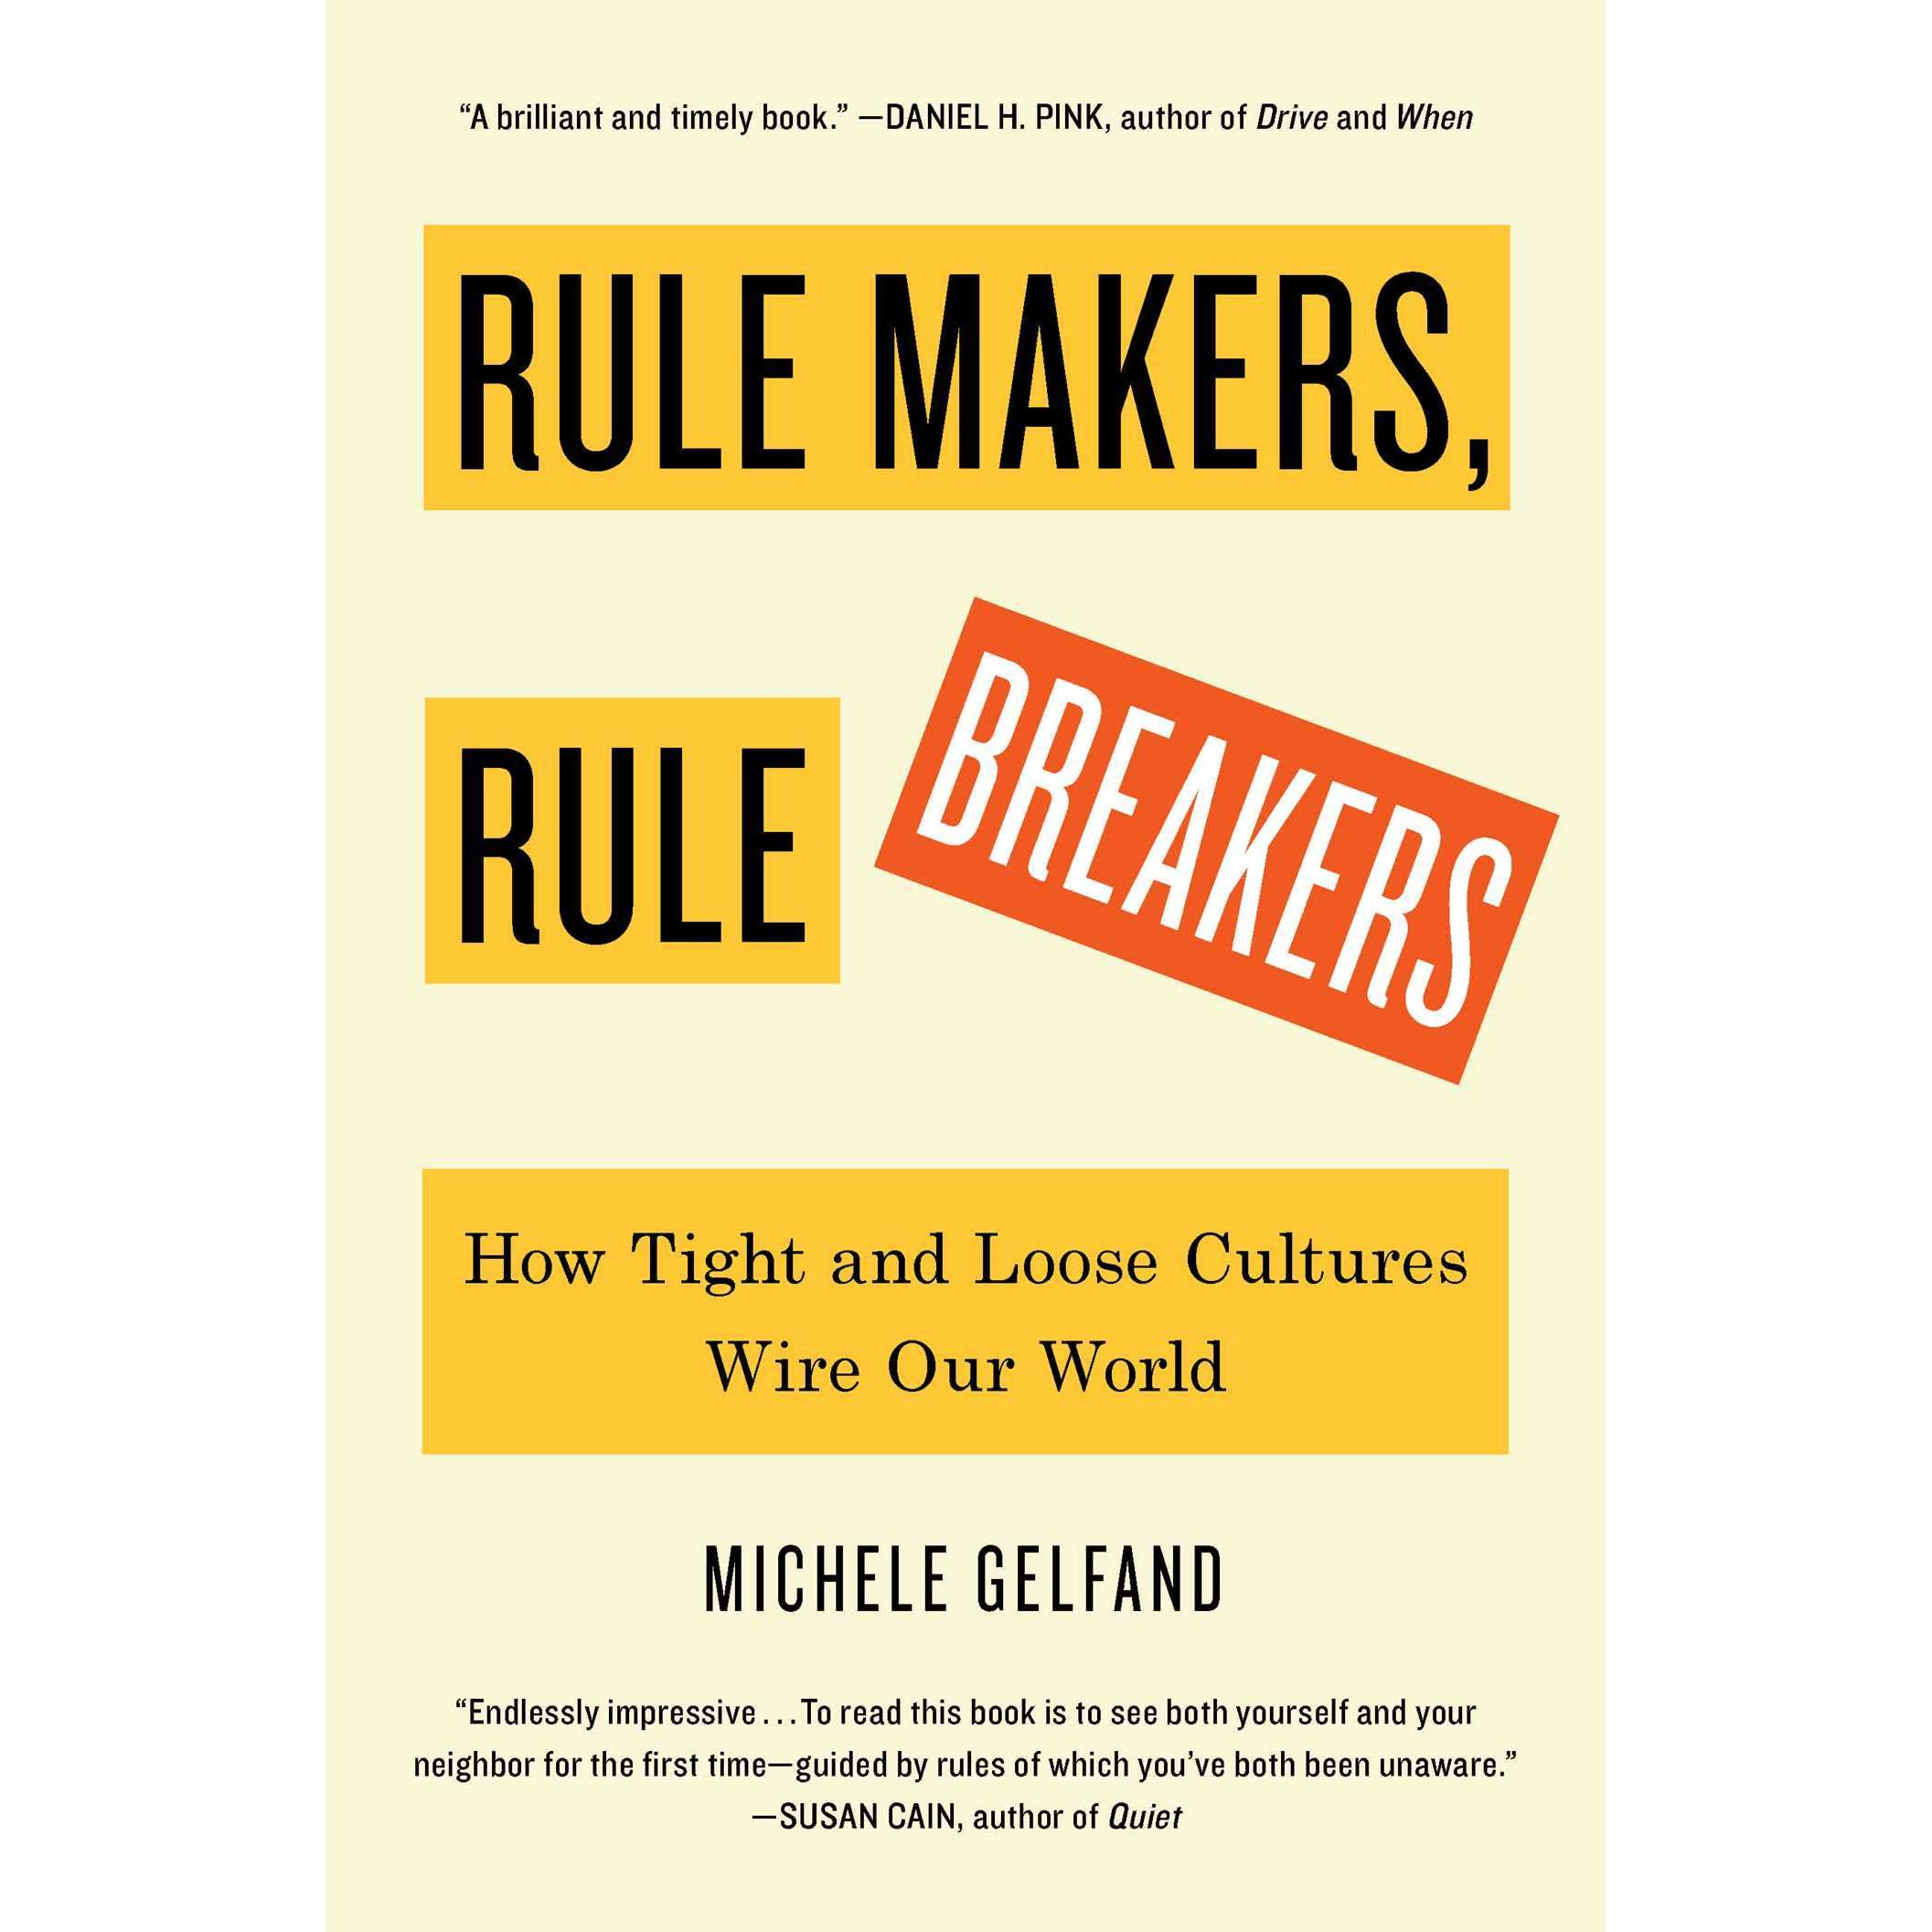 Rule Makers Breakers How Tight And Loose Cultures Wire Our Wiring For Dummies Books World By Michele Gelfand